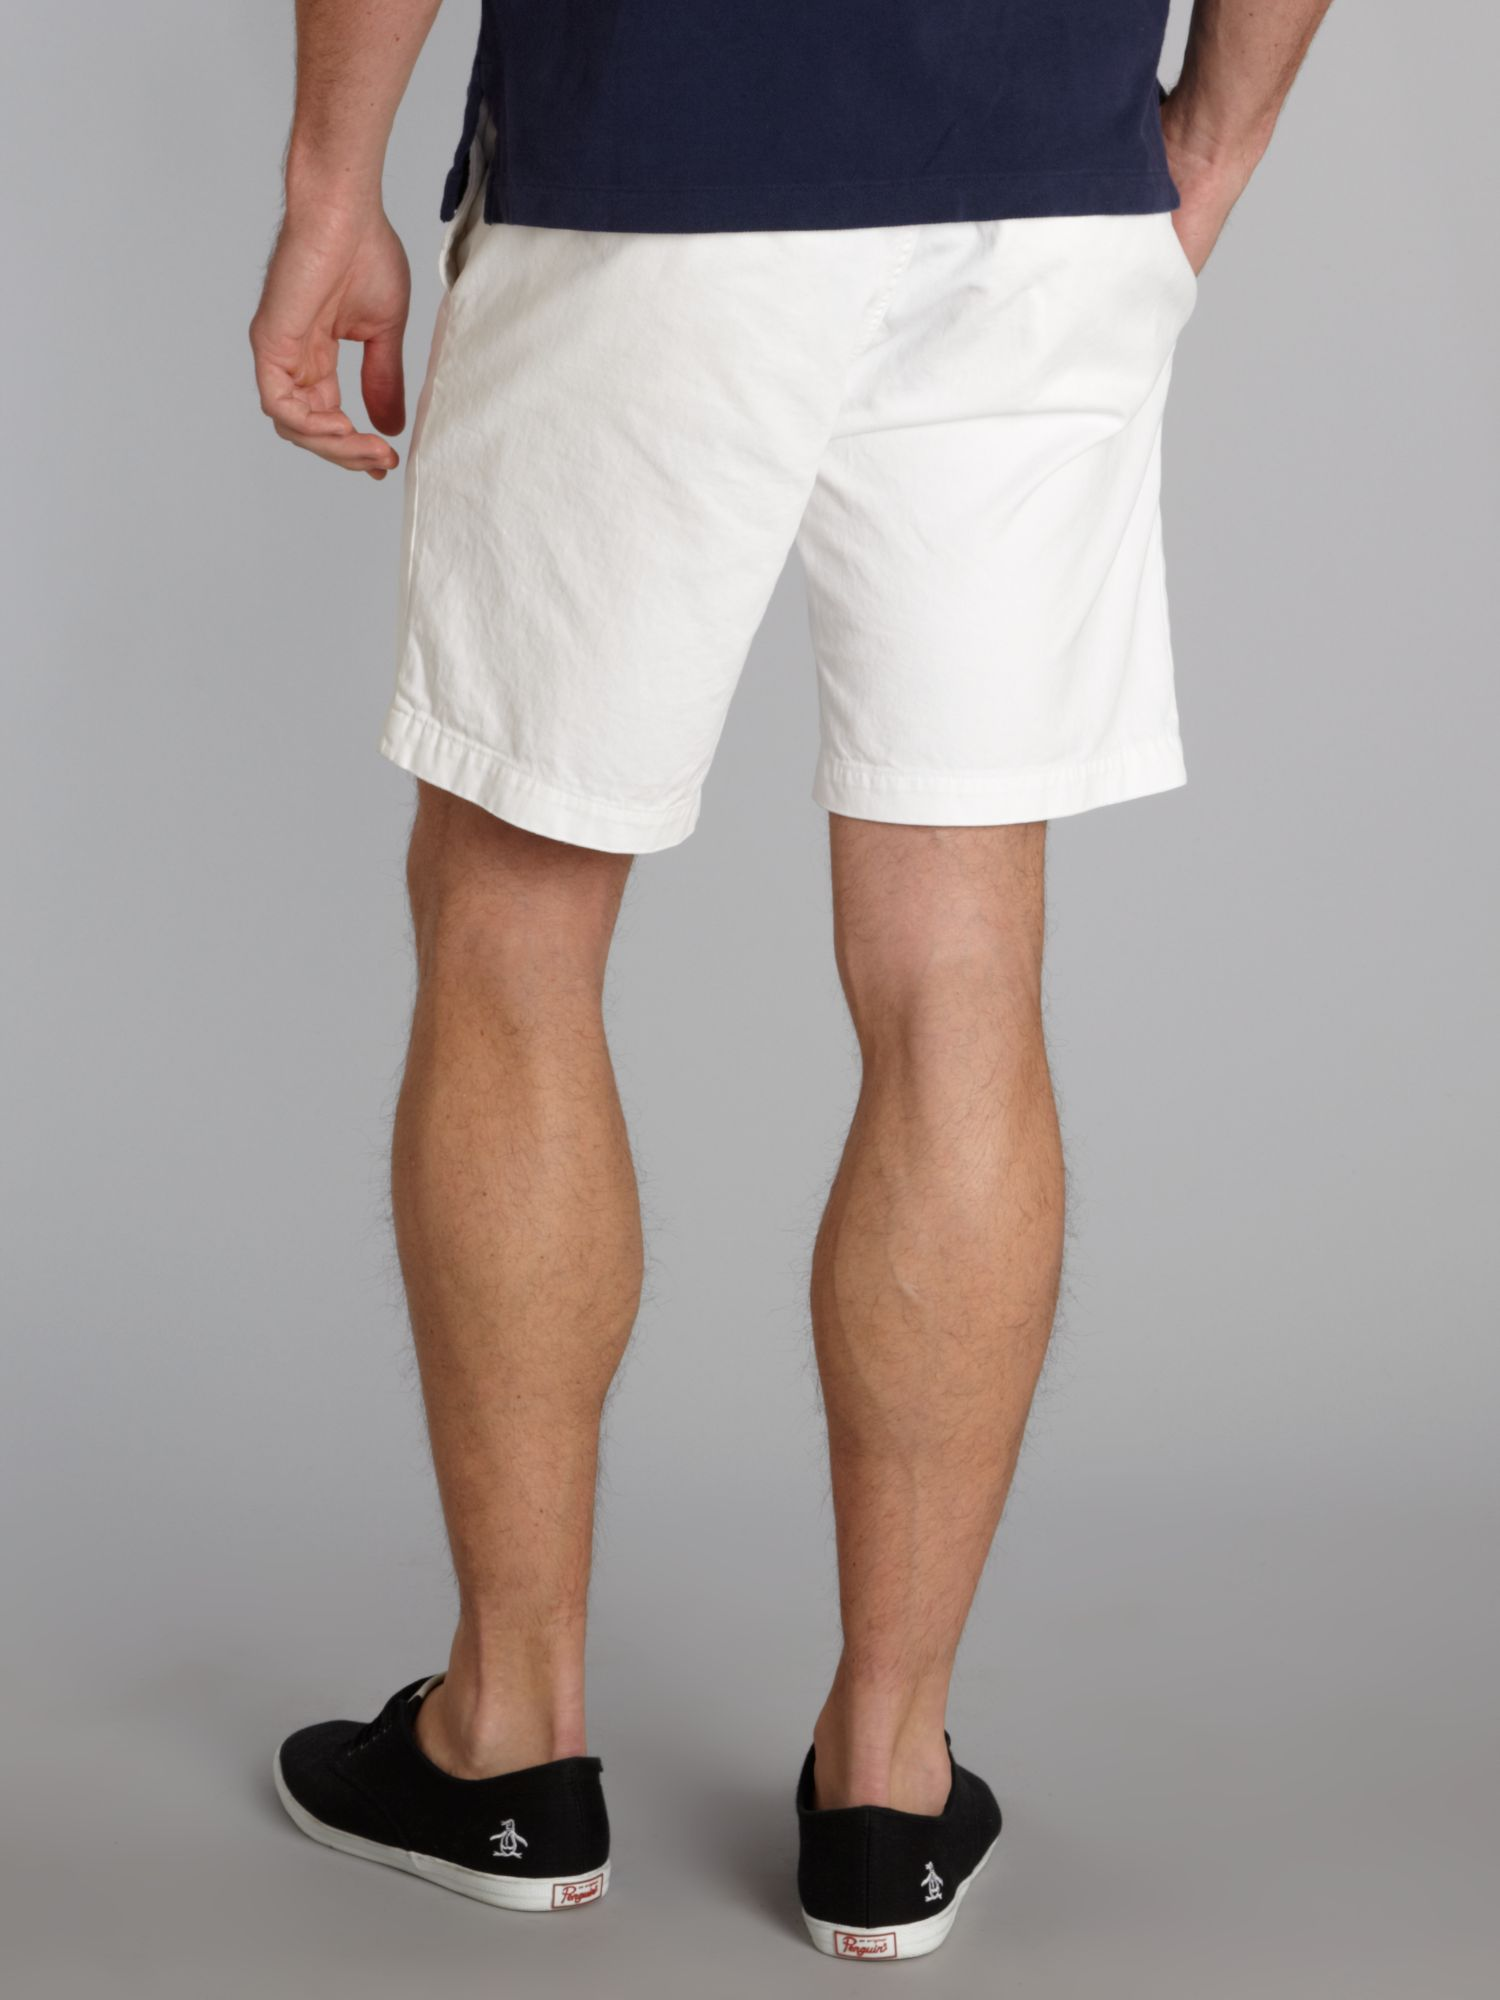 White Fitted Shorts Hardon Clothes